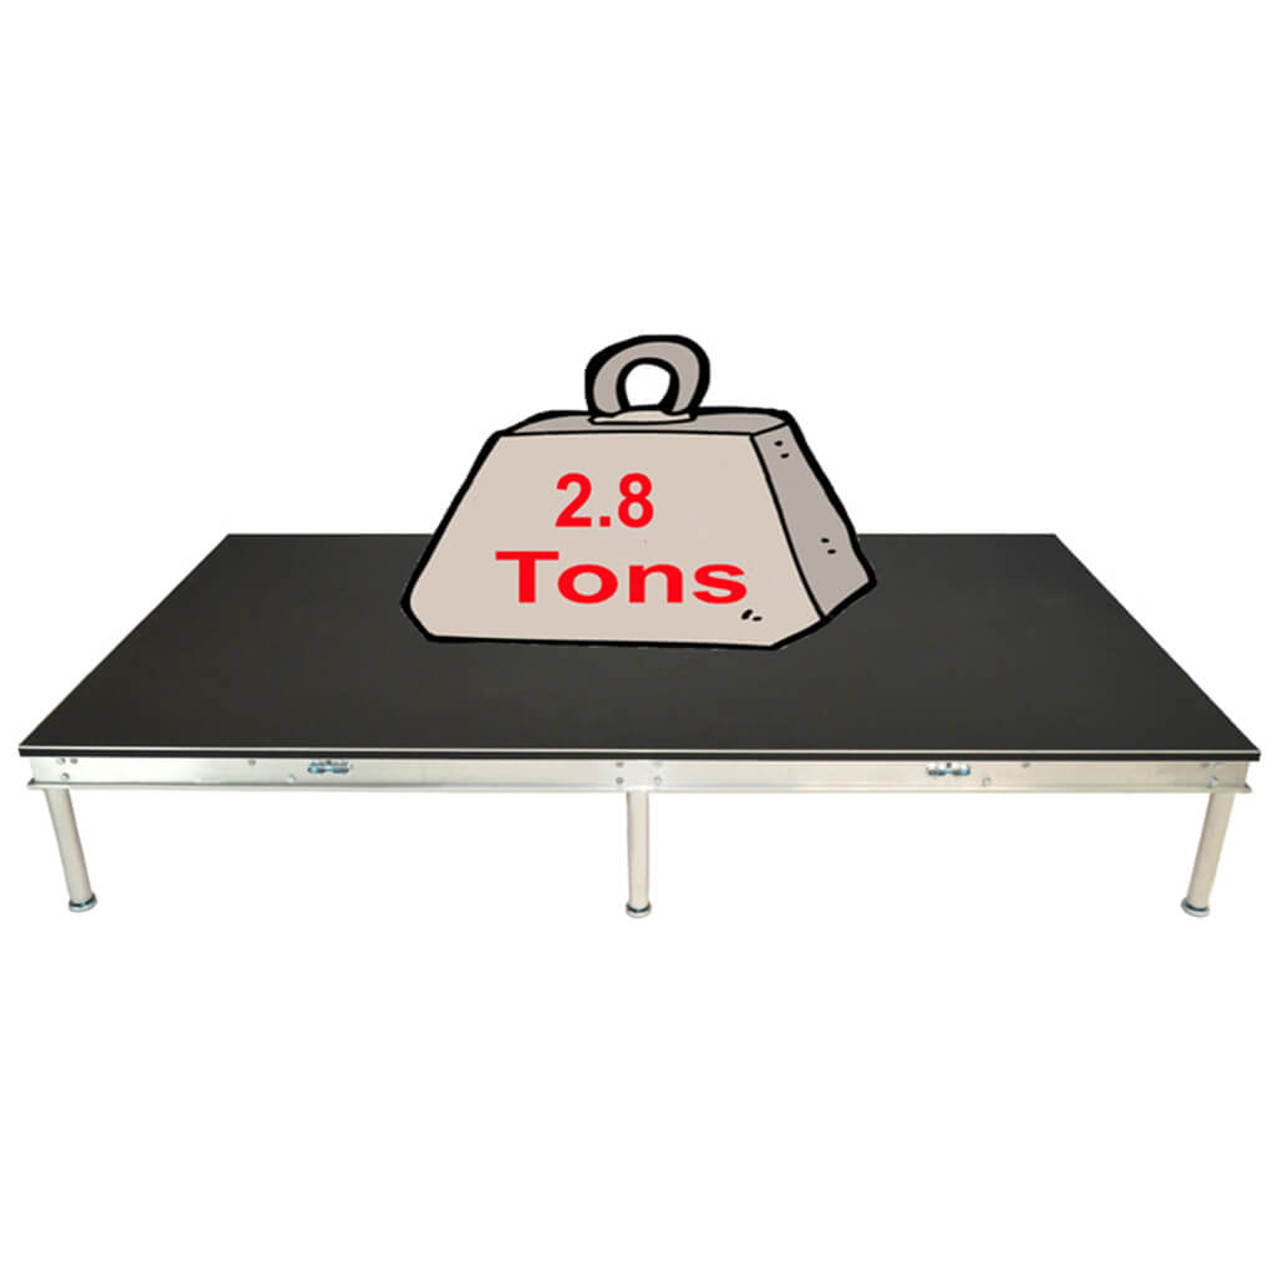 Top rated Quik Stage 8' x 16' High Portable Stage Package with Black Polyvinyl Non-Skid Surface. Additional Heights and Surfaces Available - Holds 2.8 tons per 4 x 8 when spread out evenly